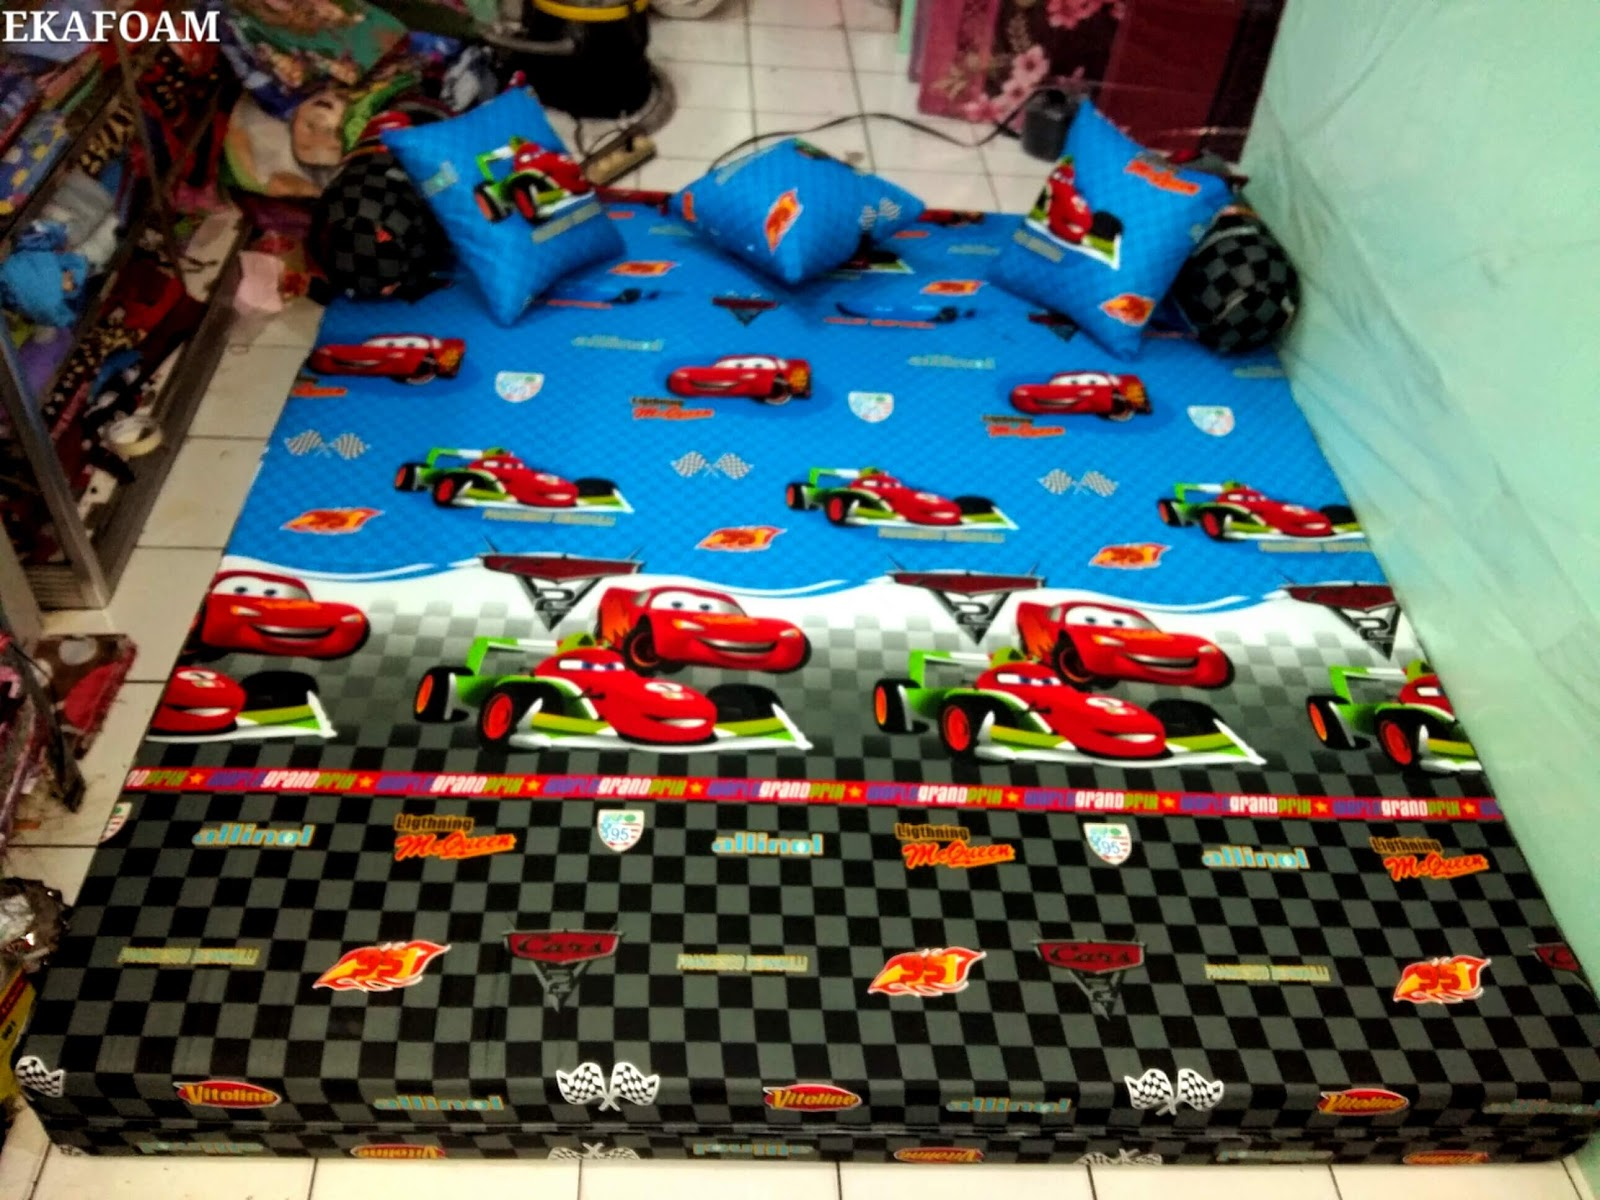 SOFA BED INOAC MOTIF THE CAR AGEN RESMI KASUR BUSA INOAC Inoac